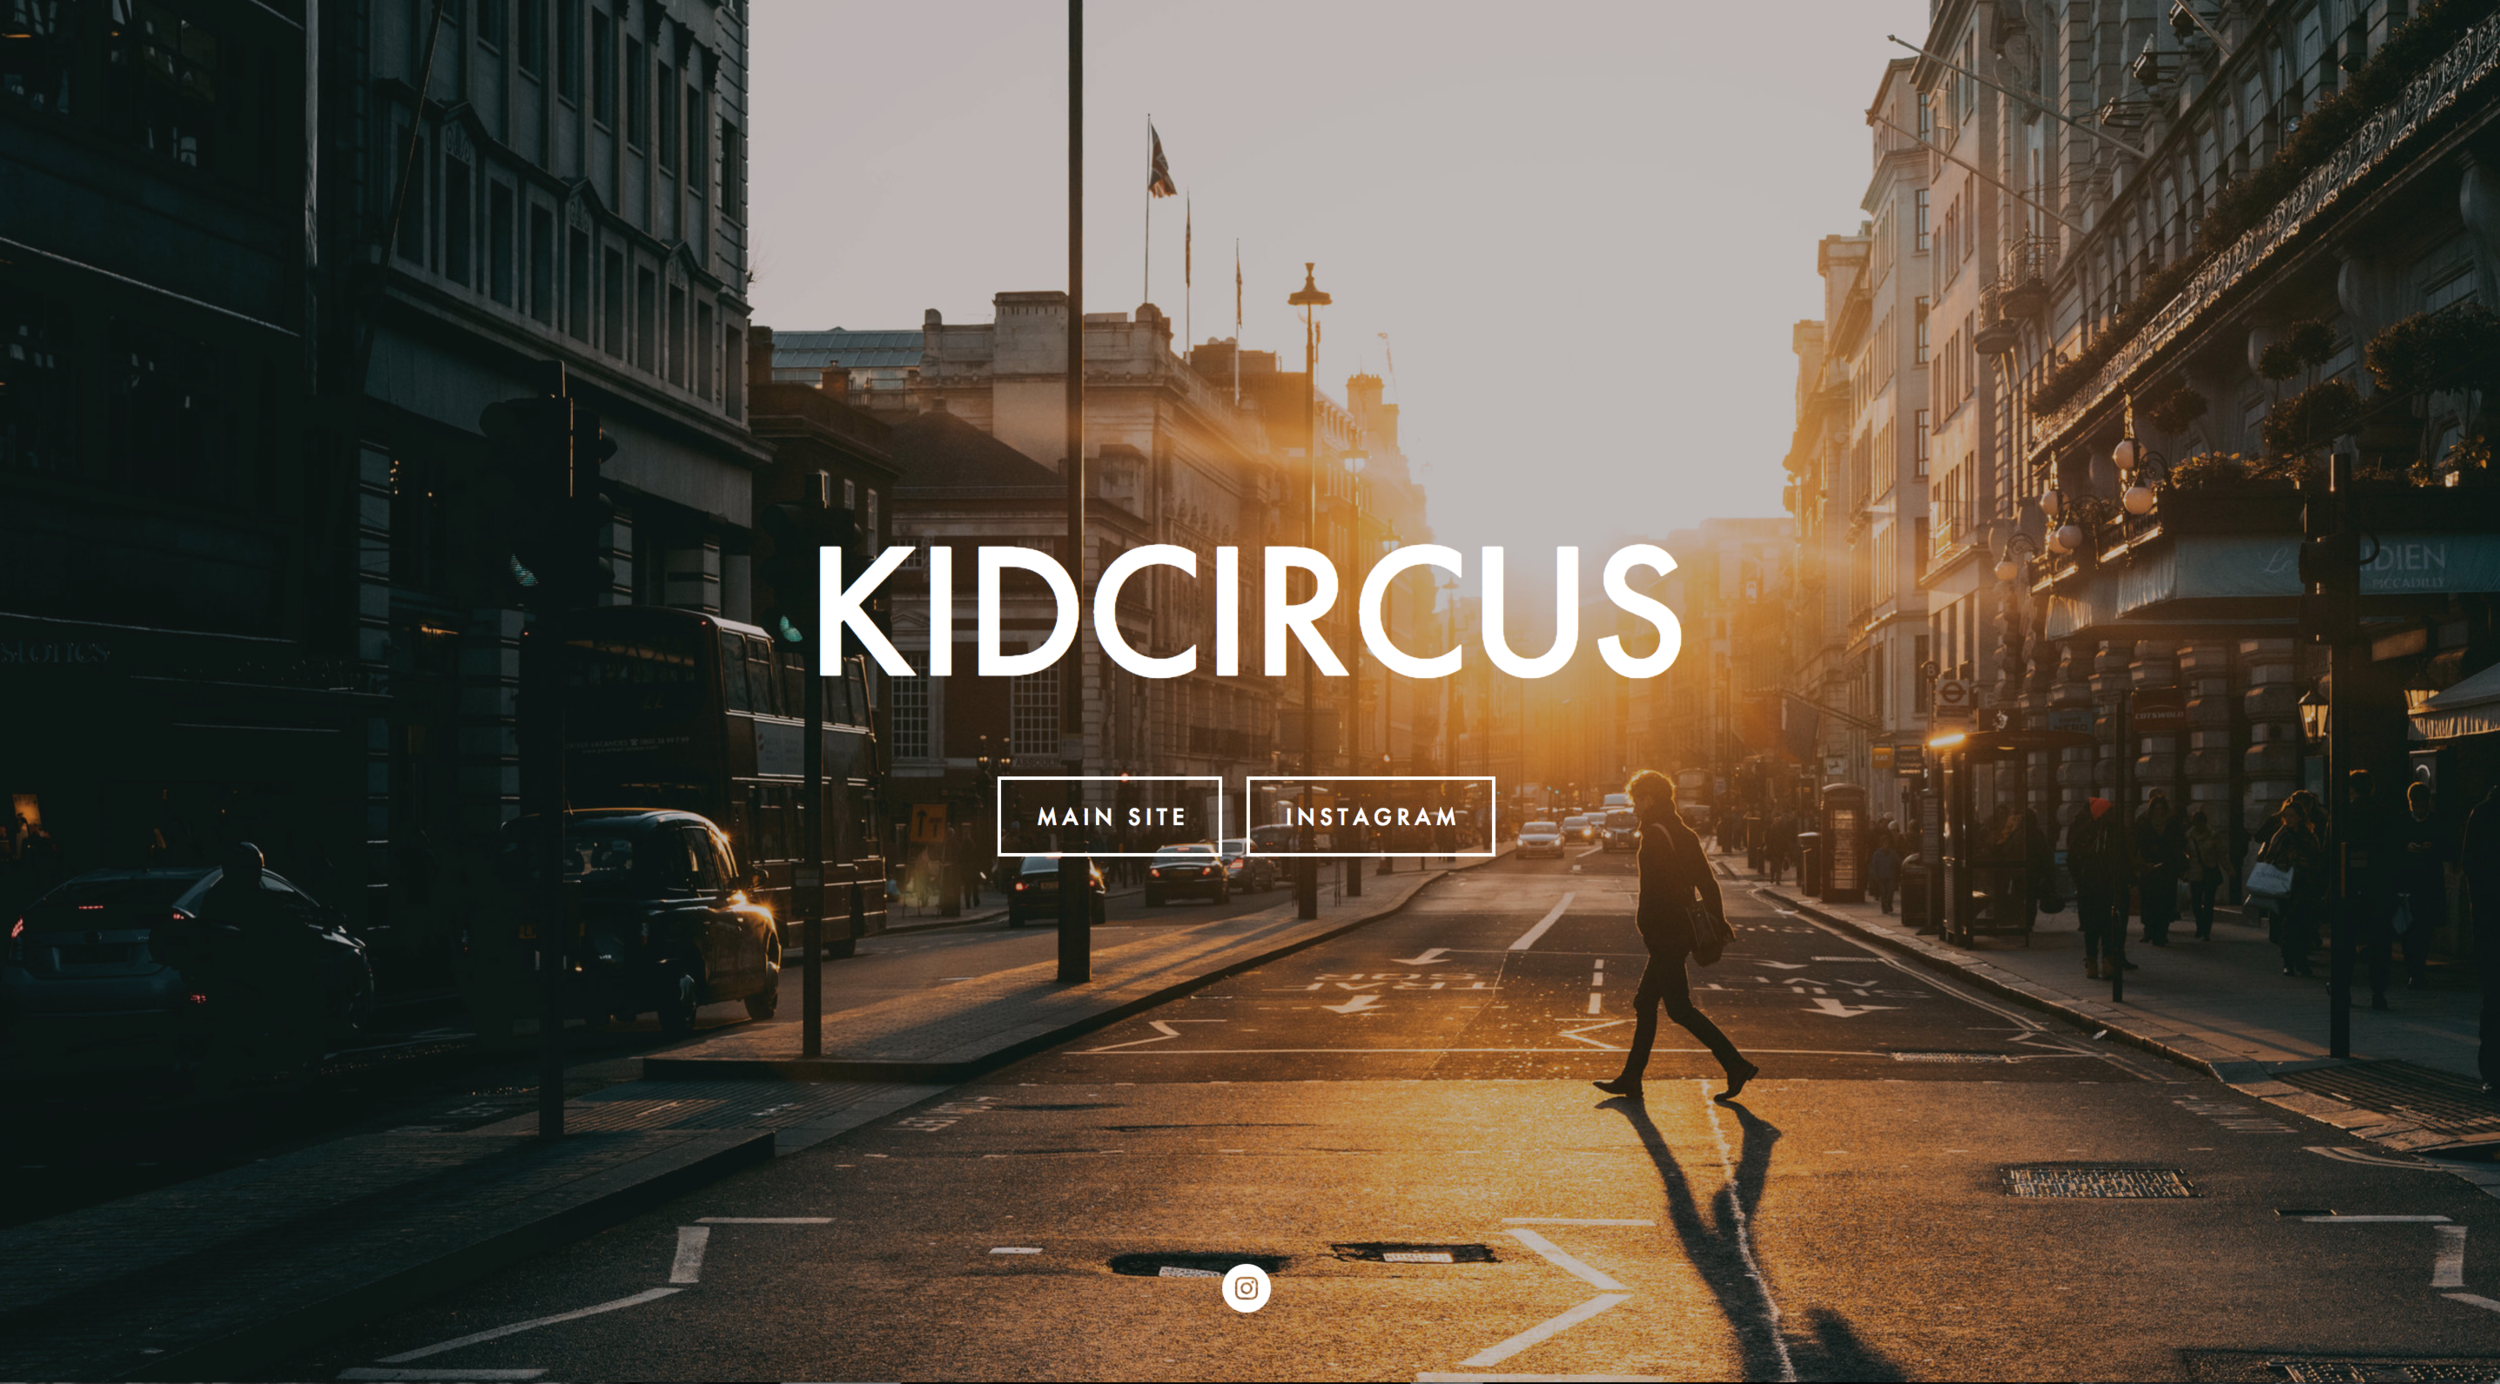 www.kidcircus.co.uk